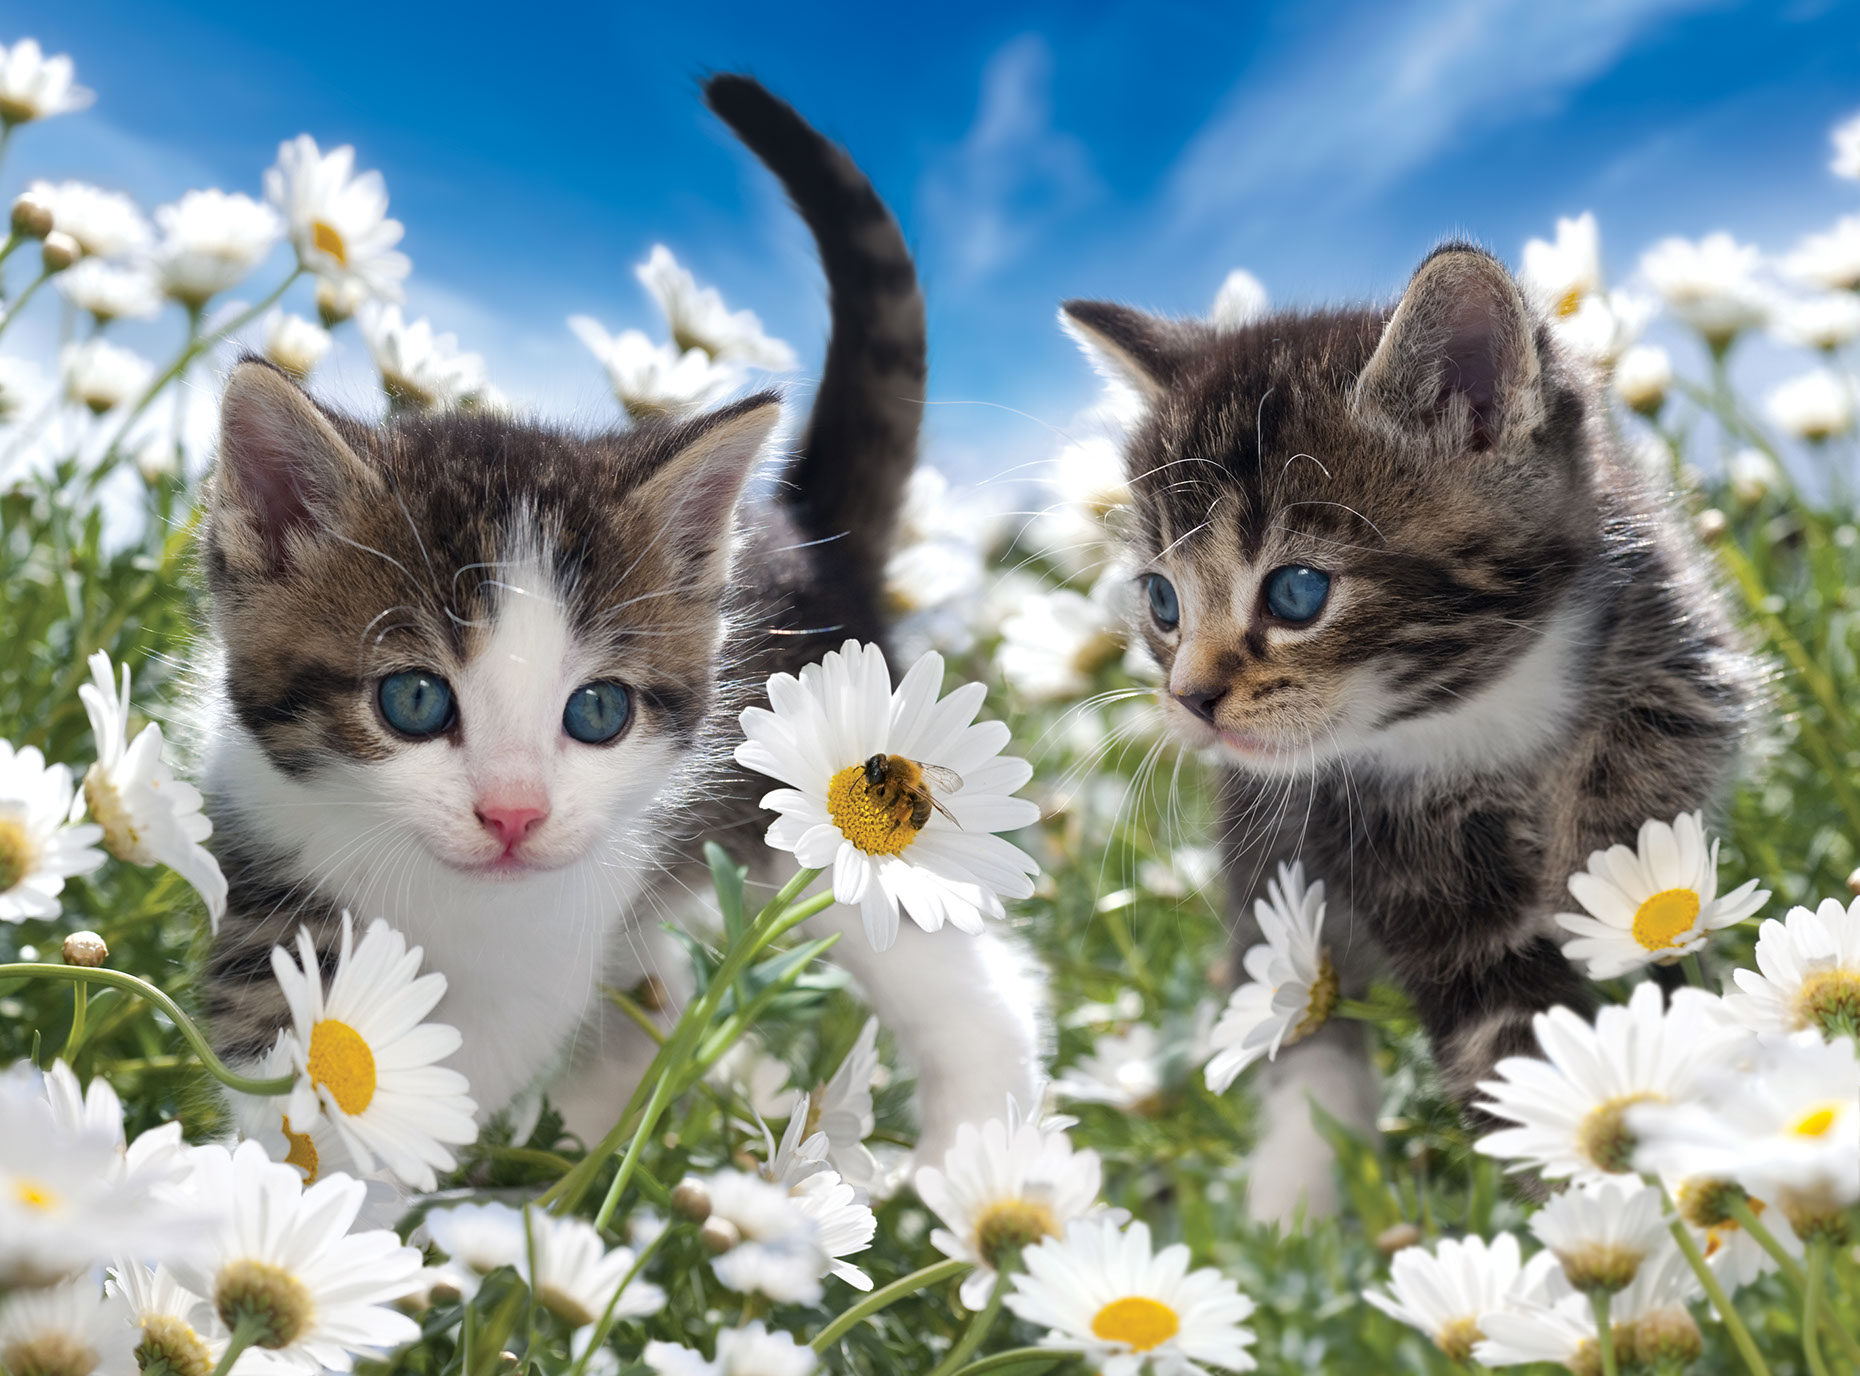 Photo-Imaging_Animals and Nature_Kittens in flowers-Frank Neidhardt